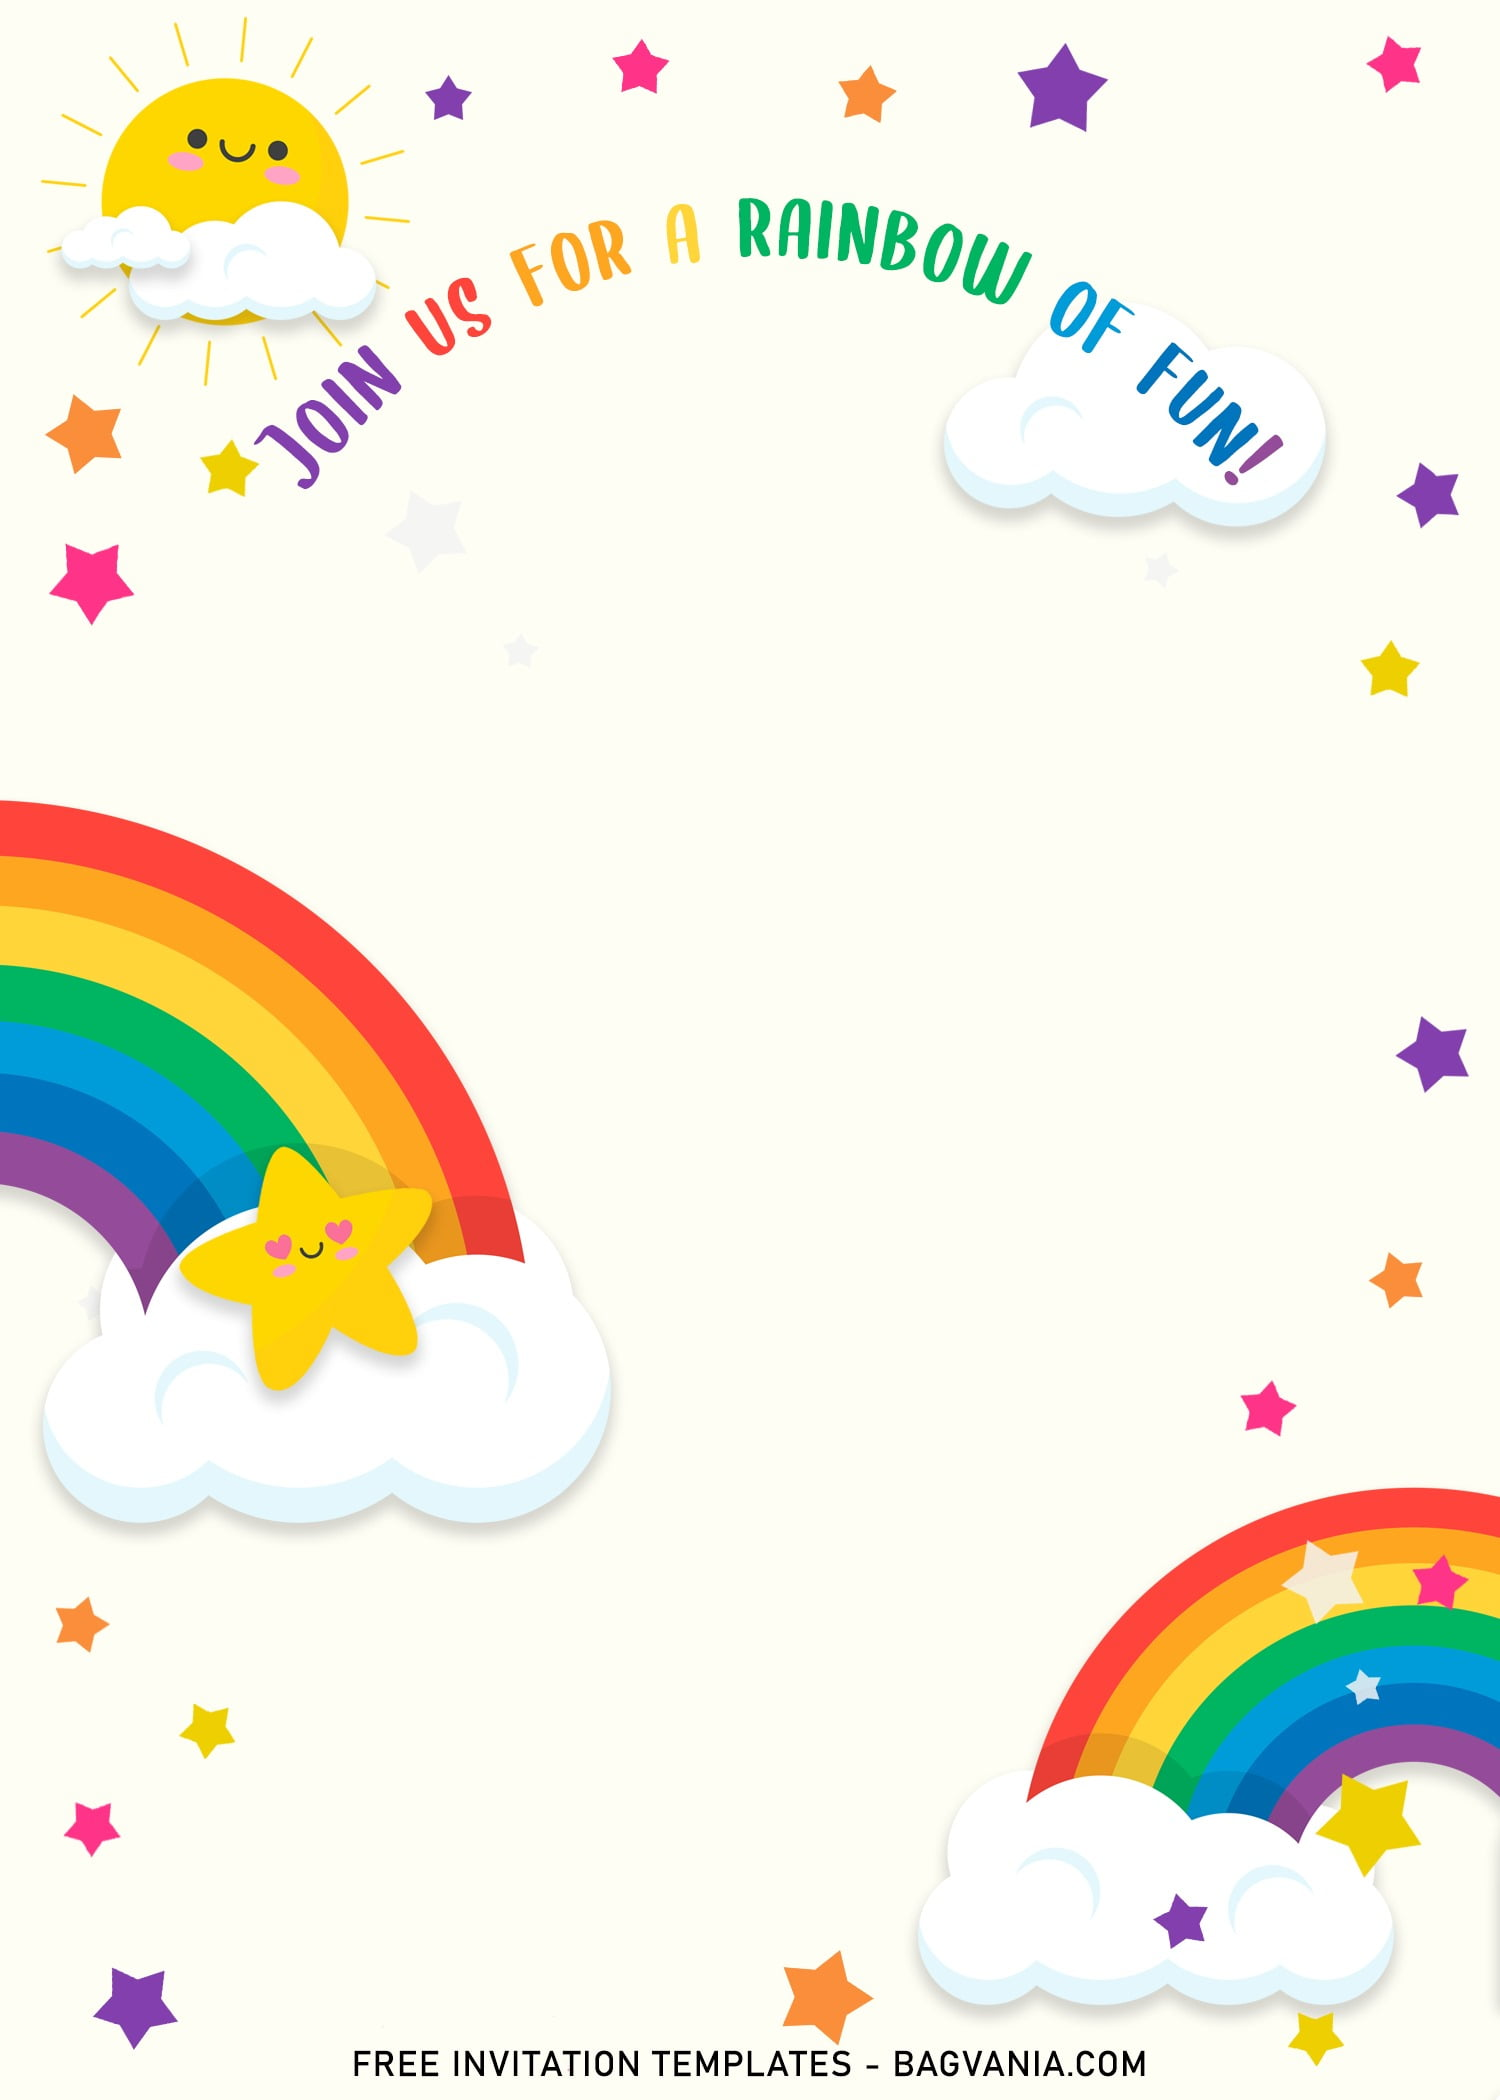 You can purchase party invitations individually or buy in bulk to take advantage of our multibuy deal. 11 Colorful Rainbow Invitation Card Templates For A Whimsical Birthday Party Free Printable Birthday Invitation Templates Bagvania